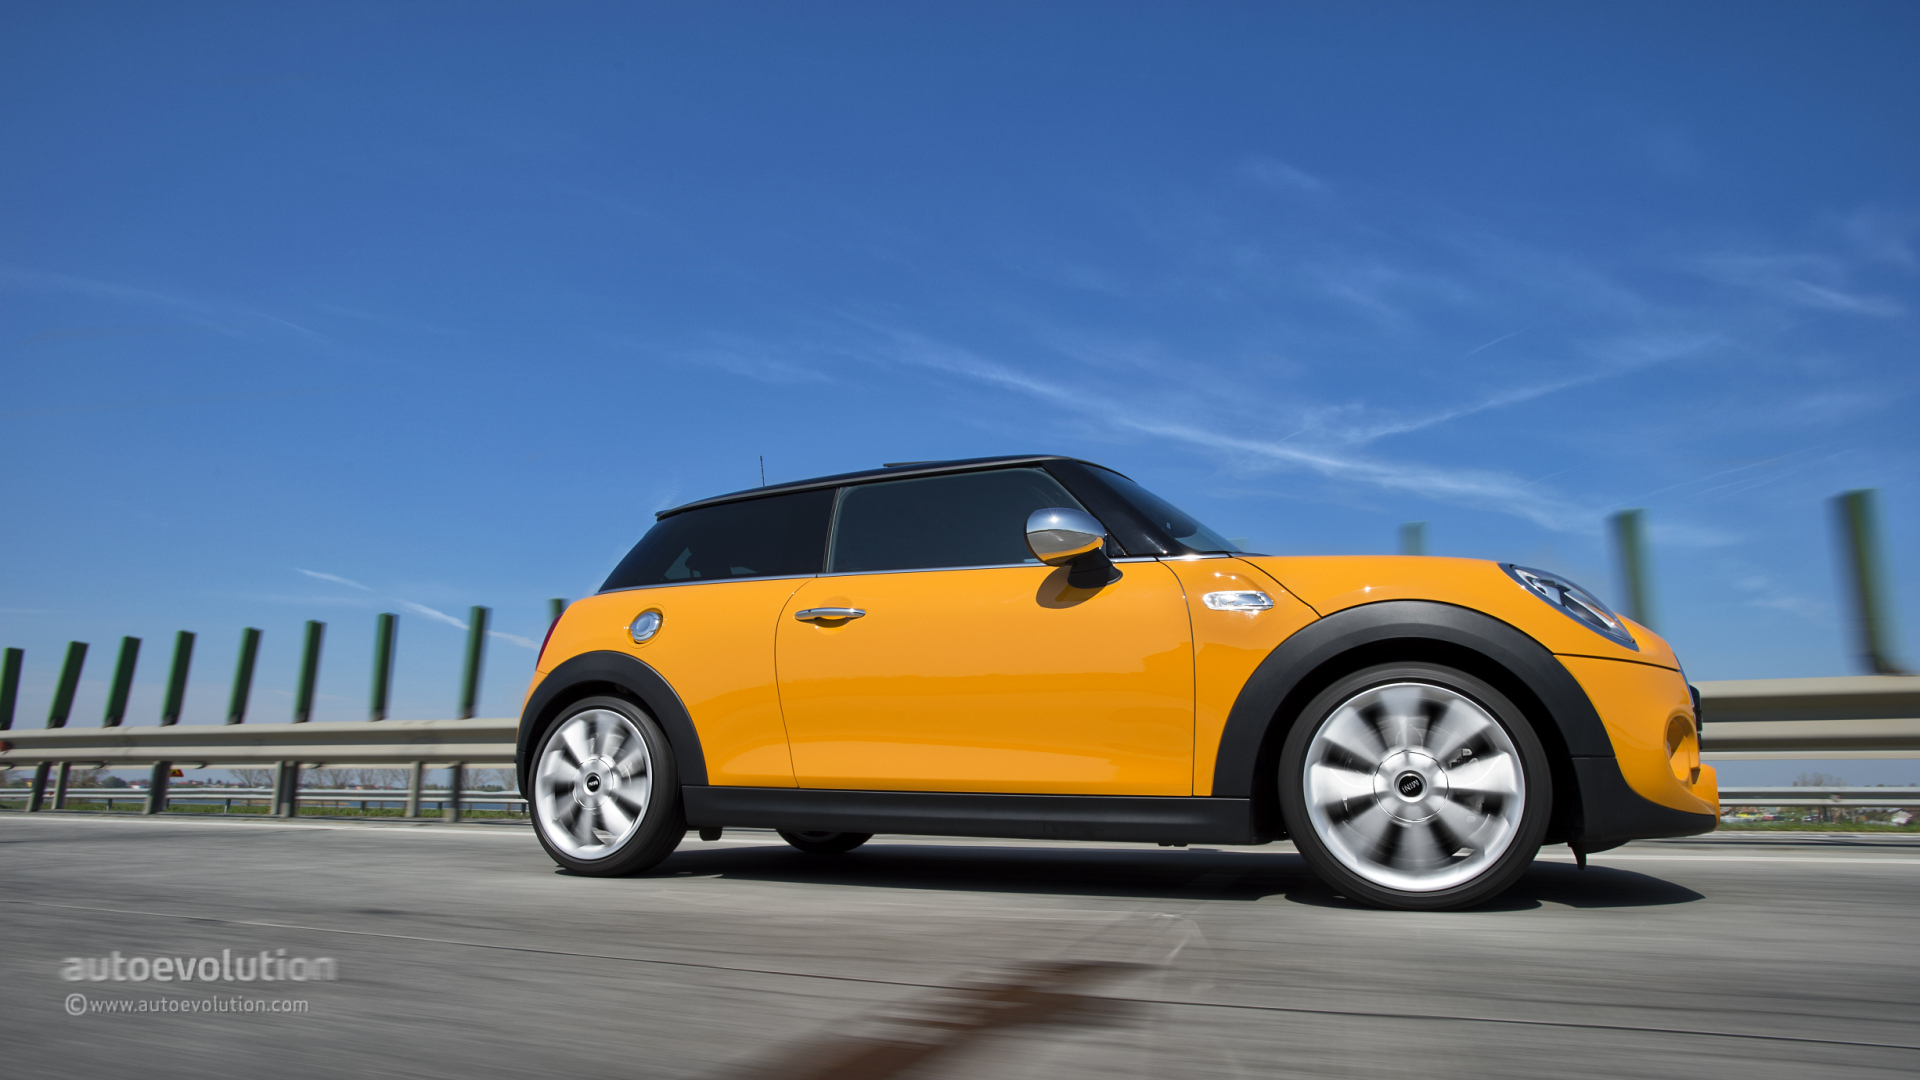 2014 mini cooper s hardtop first drive autoevolution. Black Bedroom Furniture Sets. Home Design Ideas